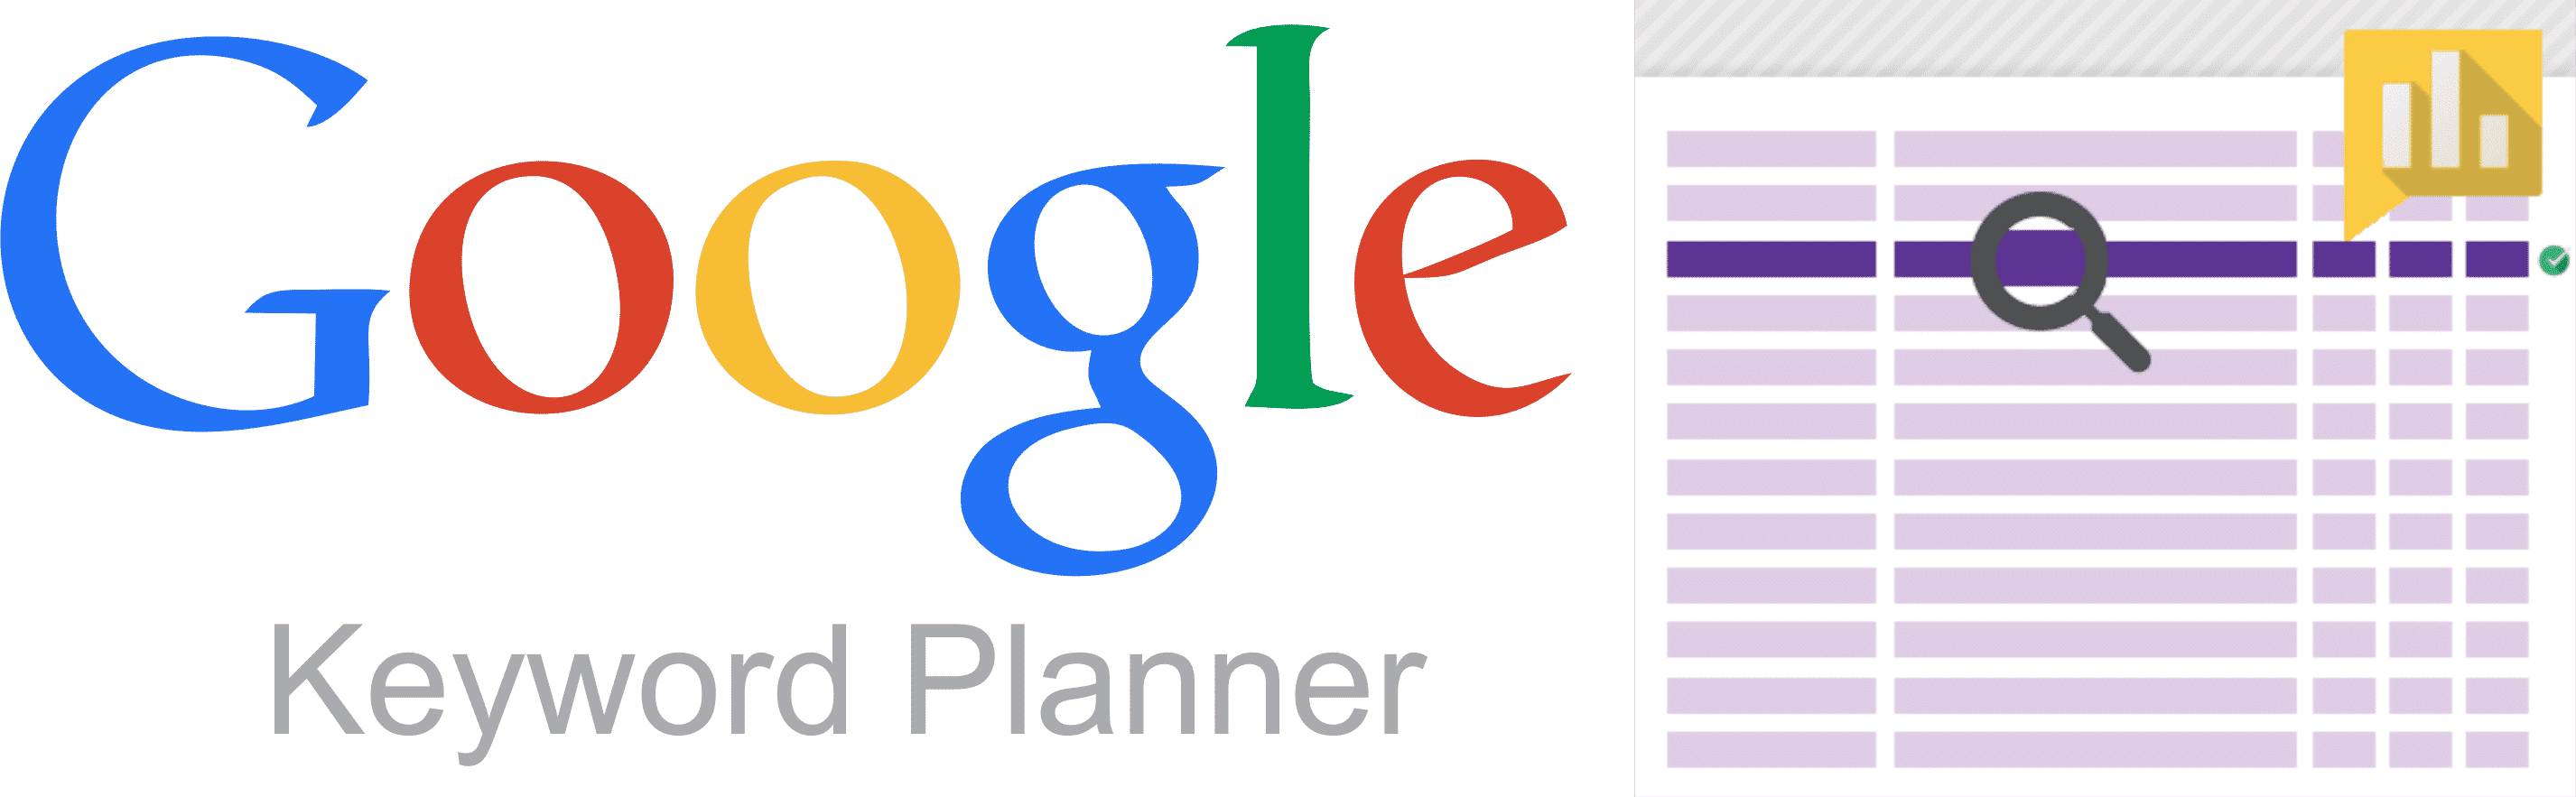 Is there activity history in Google's Keyword Planner?